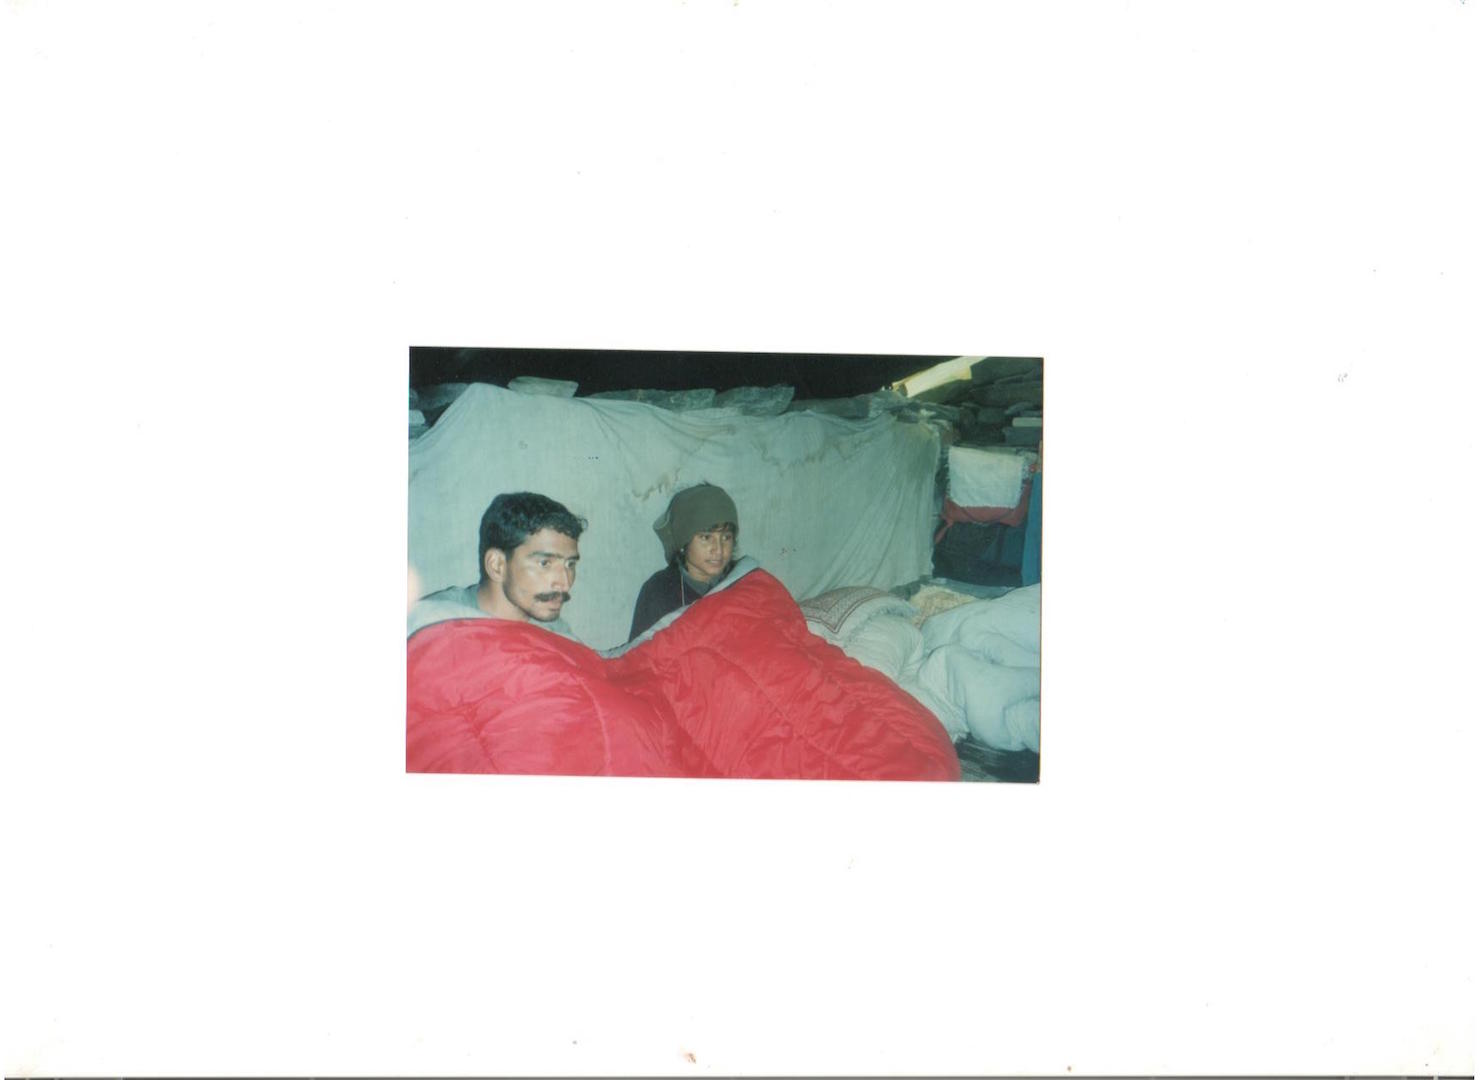 Yash Veer and I at the hut in Dorni with the only dry sleeping bag. On my head is Sridhar's monkey-cap.